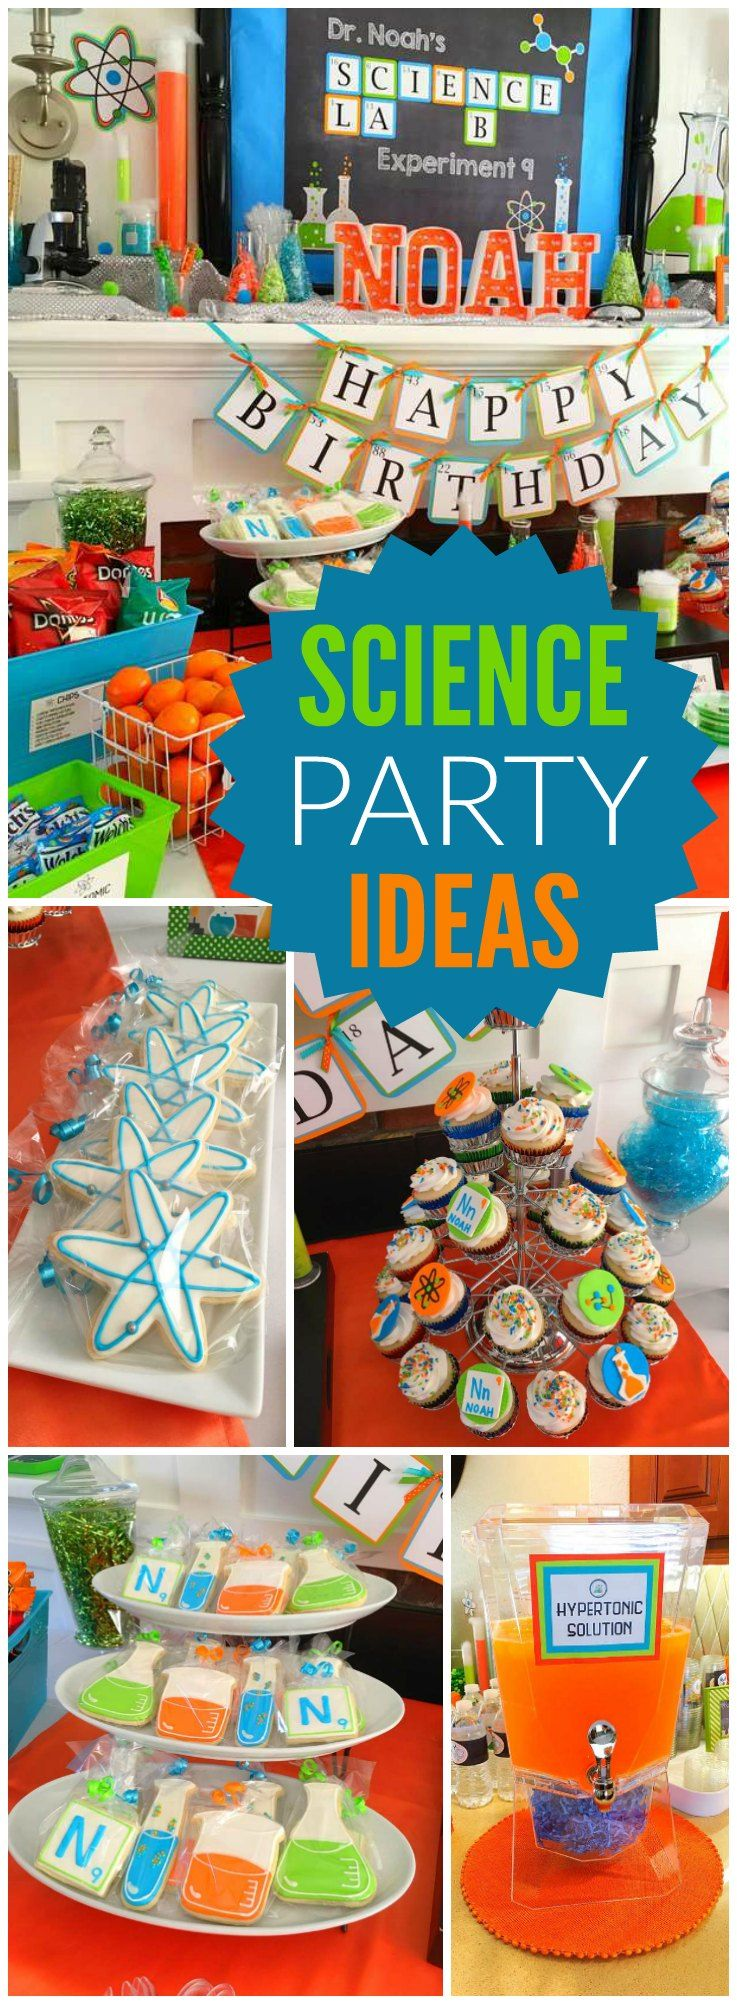 birthday lab 11 reviews of idea lab - memorial i just wrapped up my daughter's fourth birthday party and i have to say i was very impressed with idea lab-memorial i went with the art party and the kids had a great time.